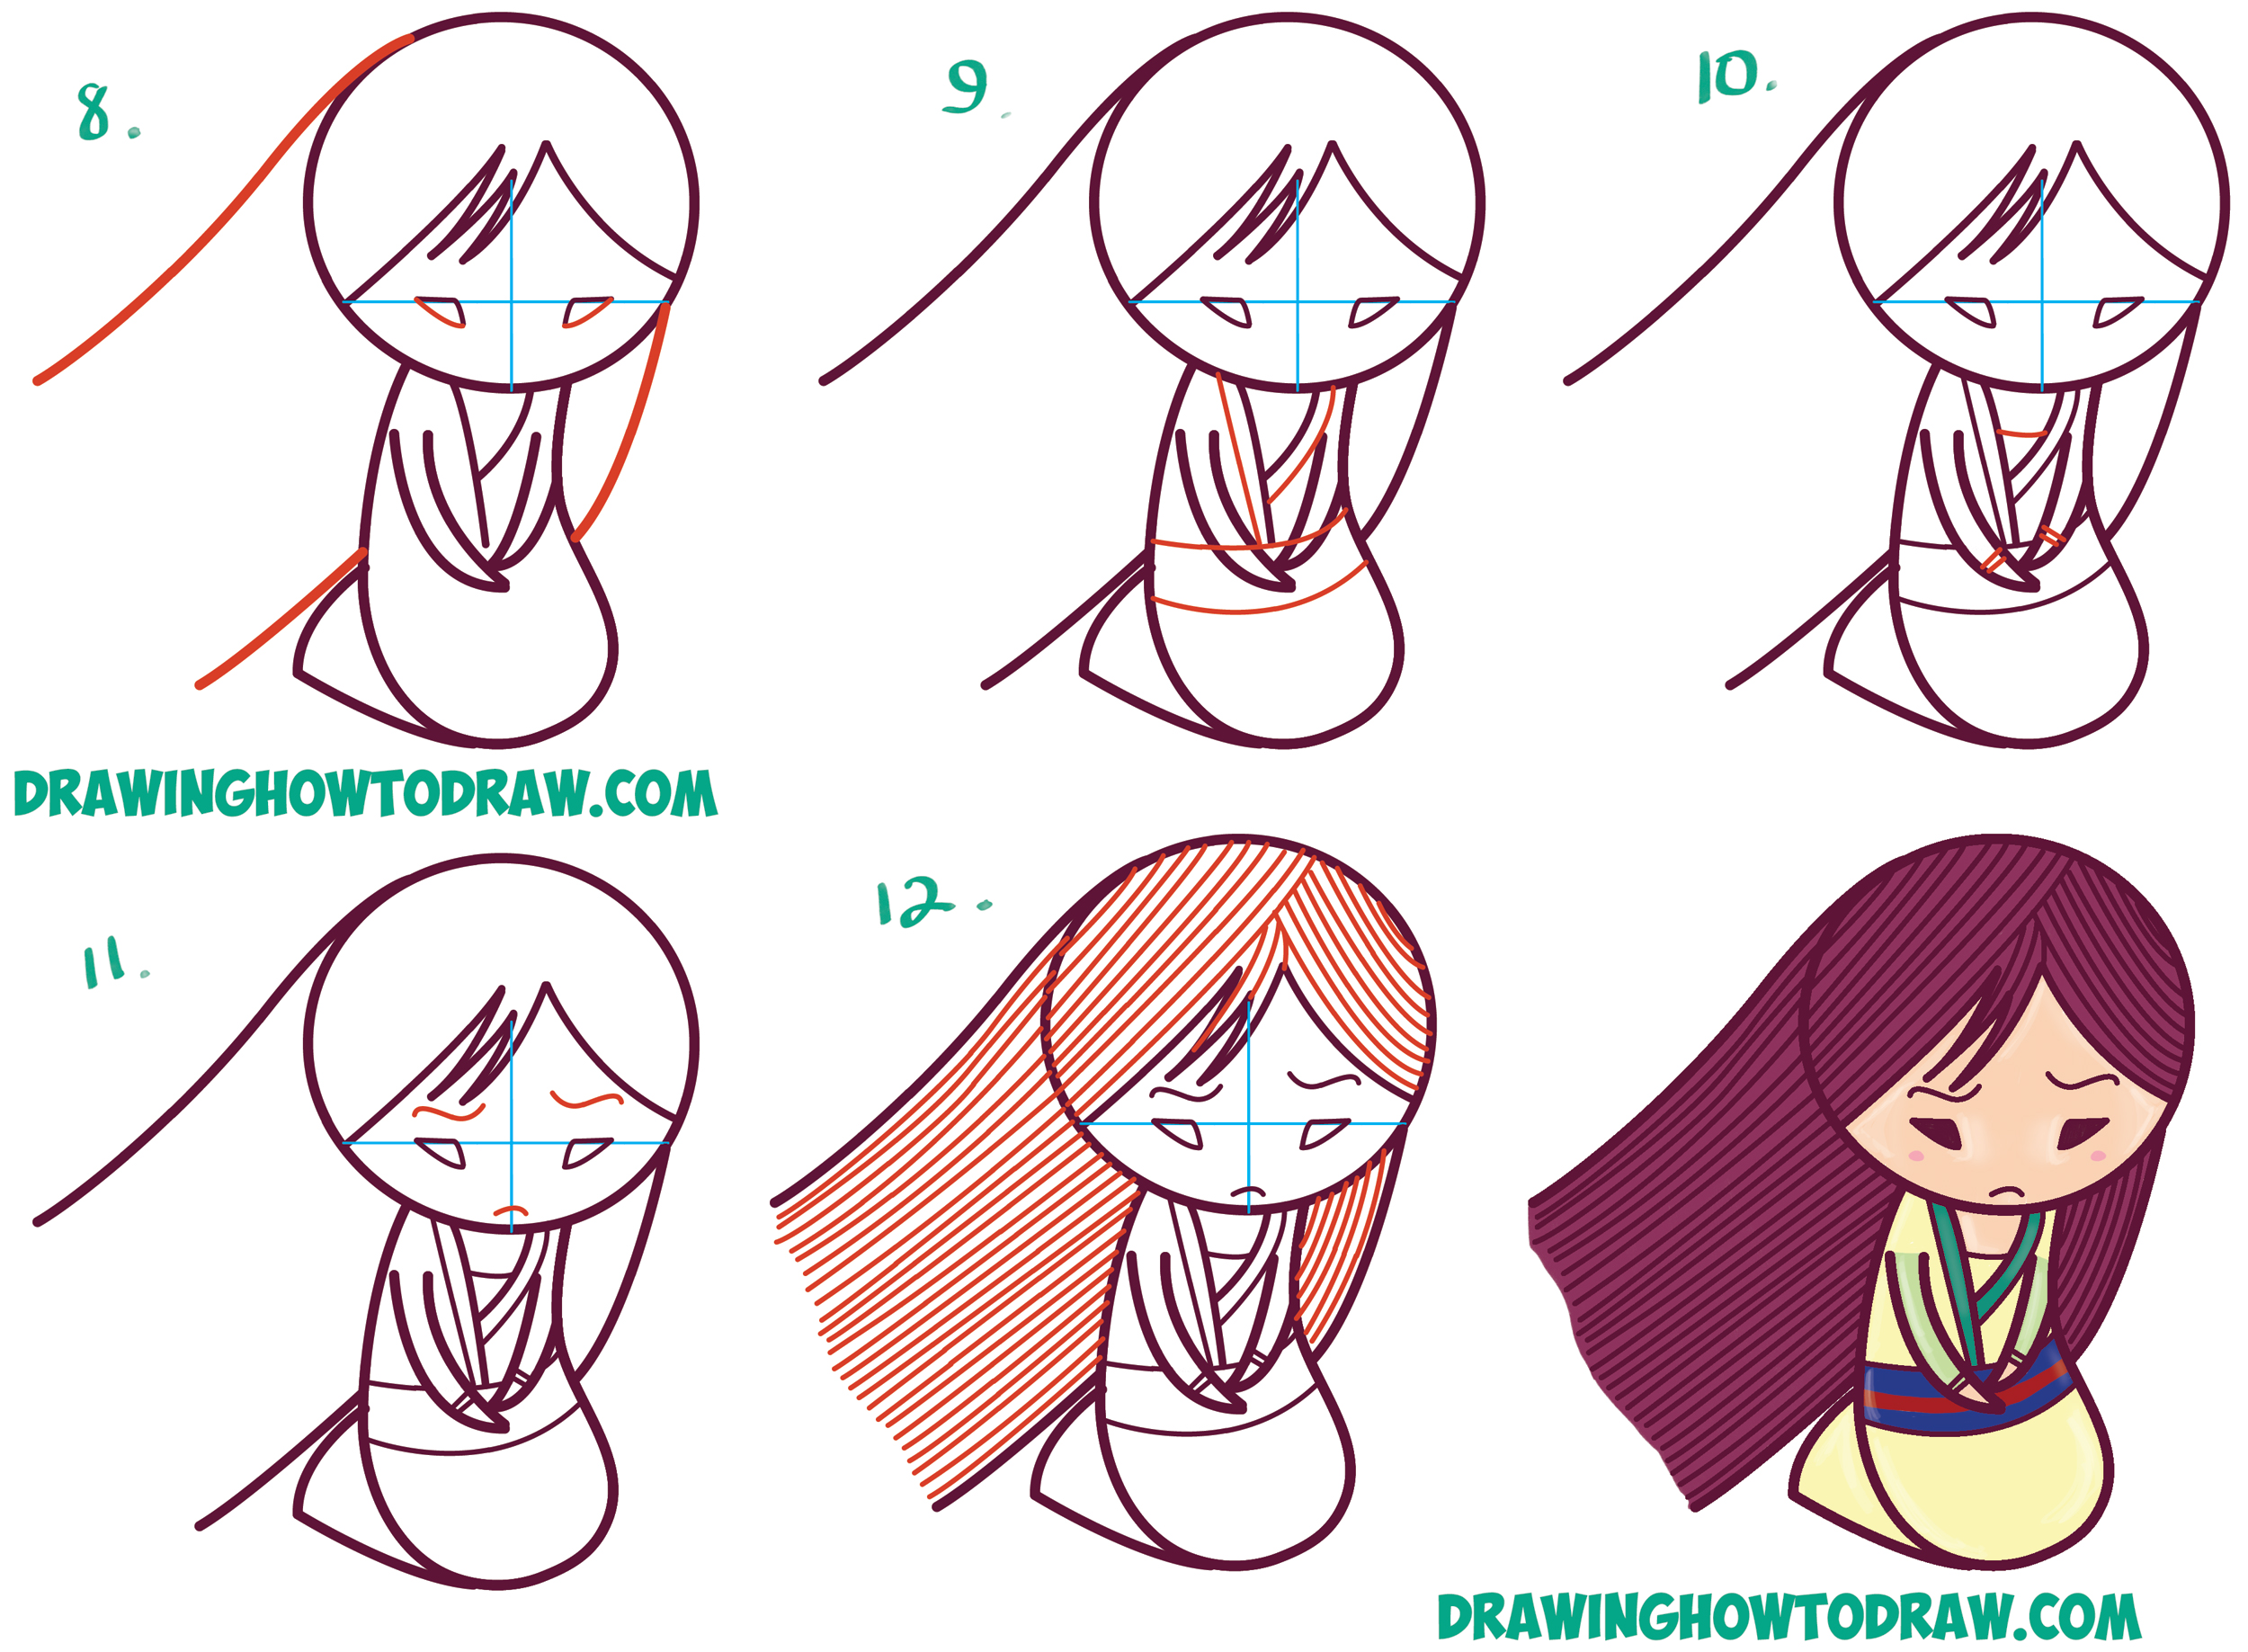 Uncategorized Disney Drawings Step By Step how to draw cute kawaii chibi mulan the chinese disney princess learn simple steps drawing